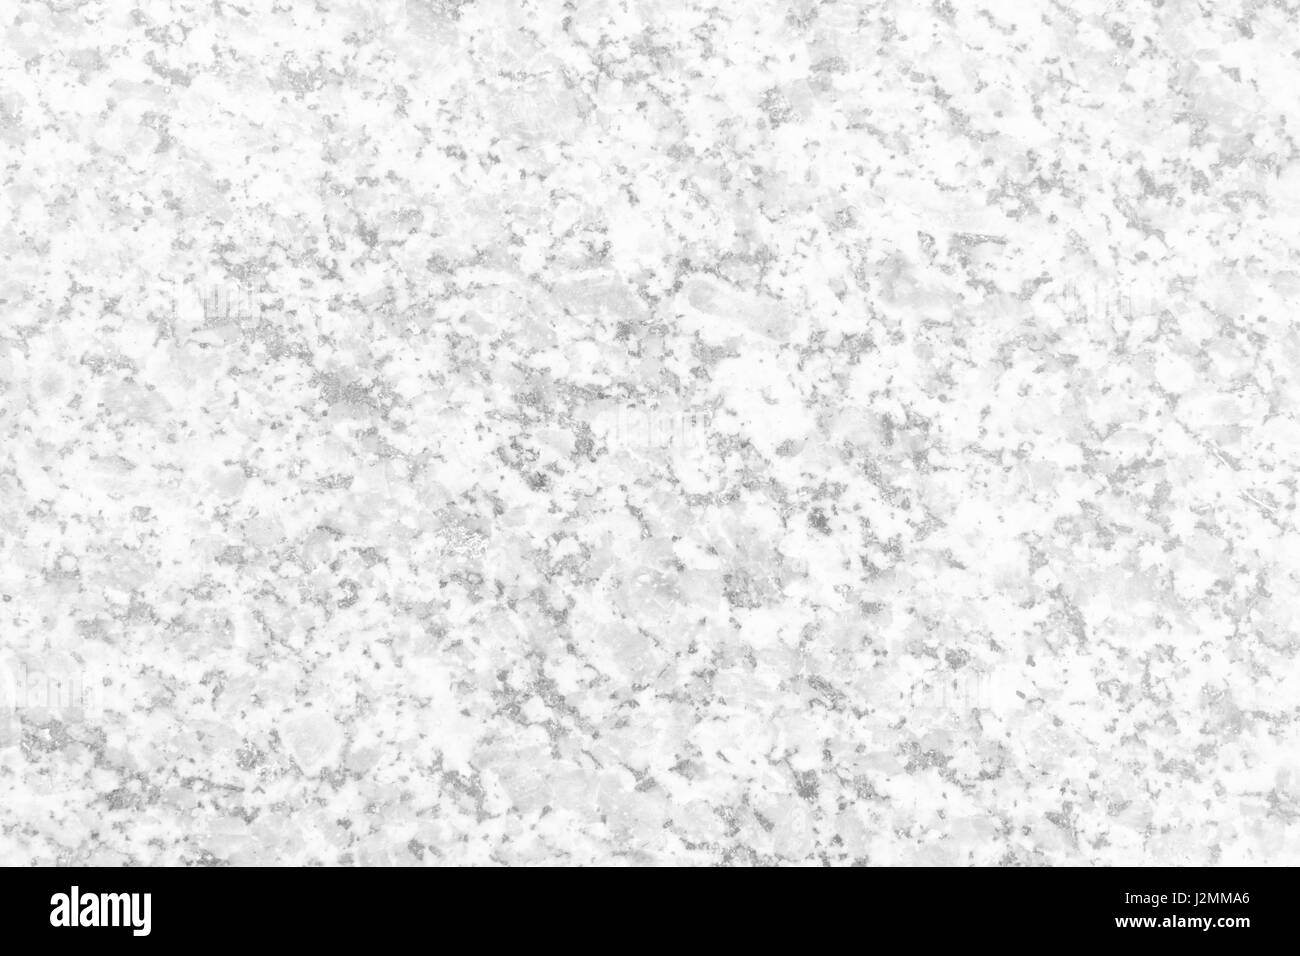 White Marble Wall Texture Background. Suitable for Presentation and Web Templates with Space for Text. - Stock Image